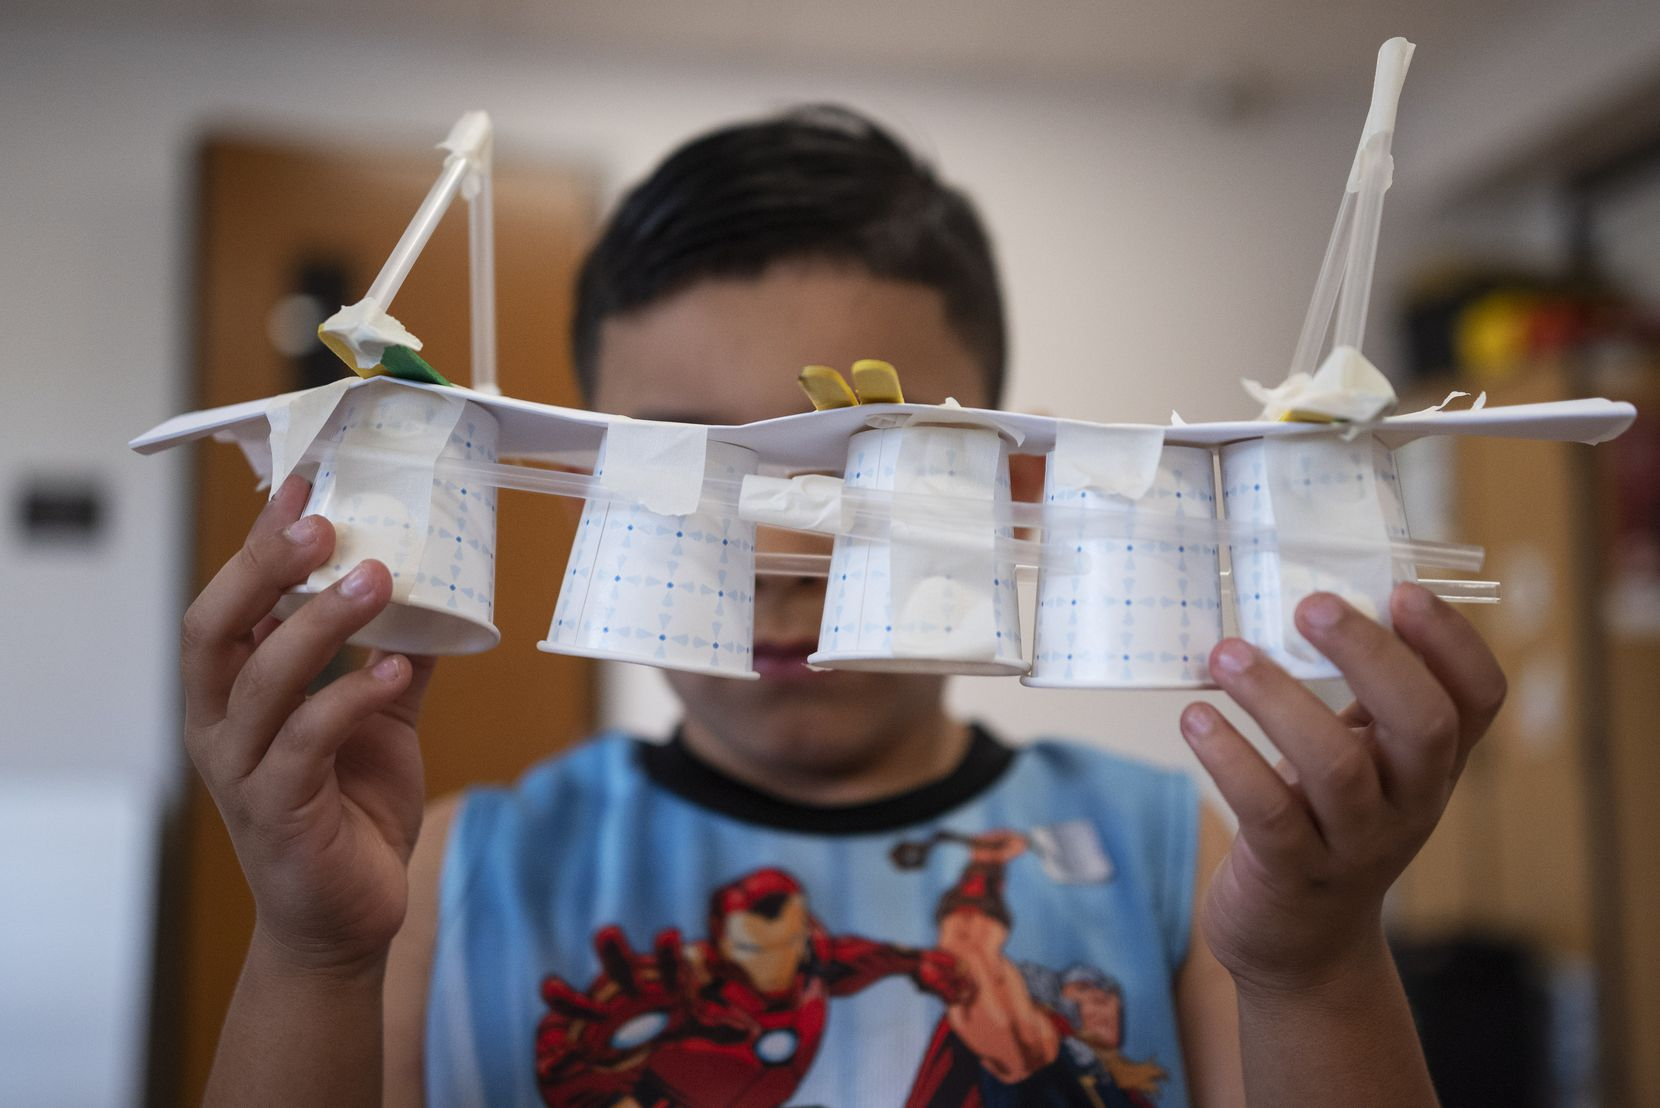 A young boy shows off a bridge he created using a variety of items such as cups, paper and popsicle sticks.